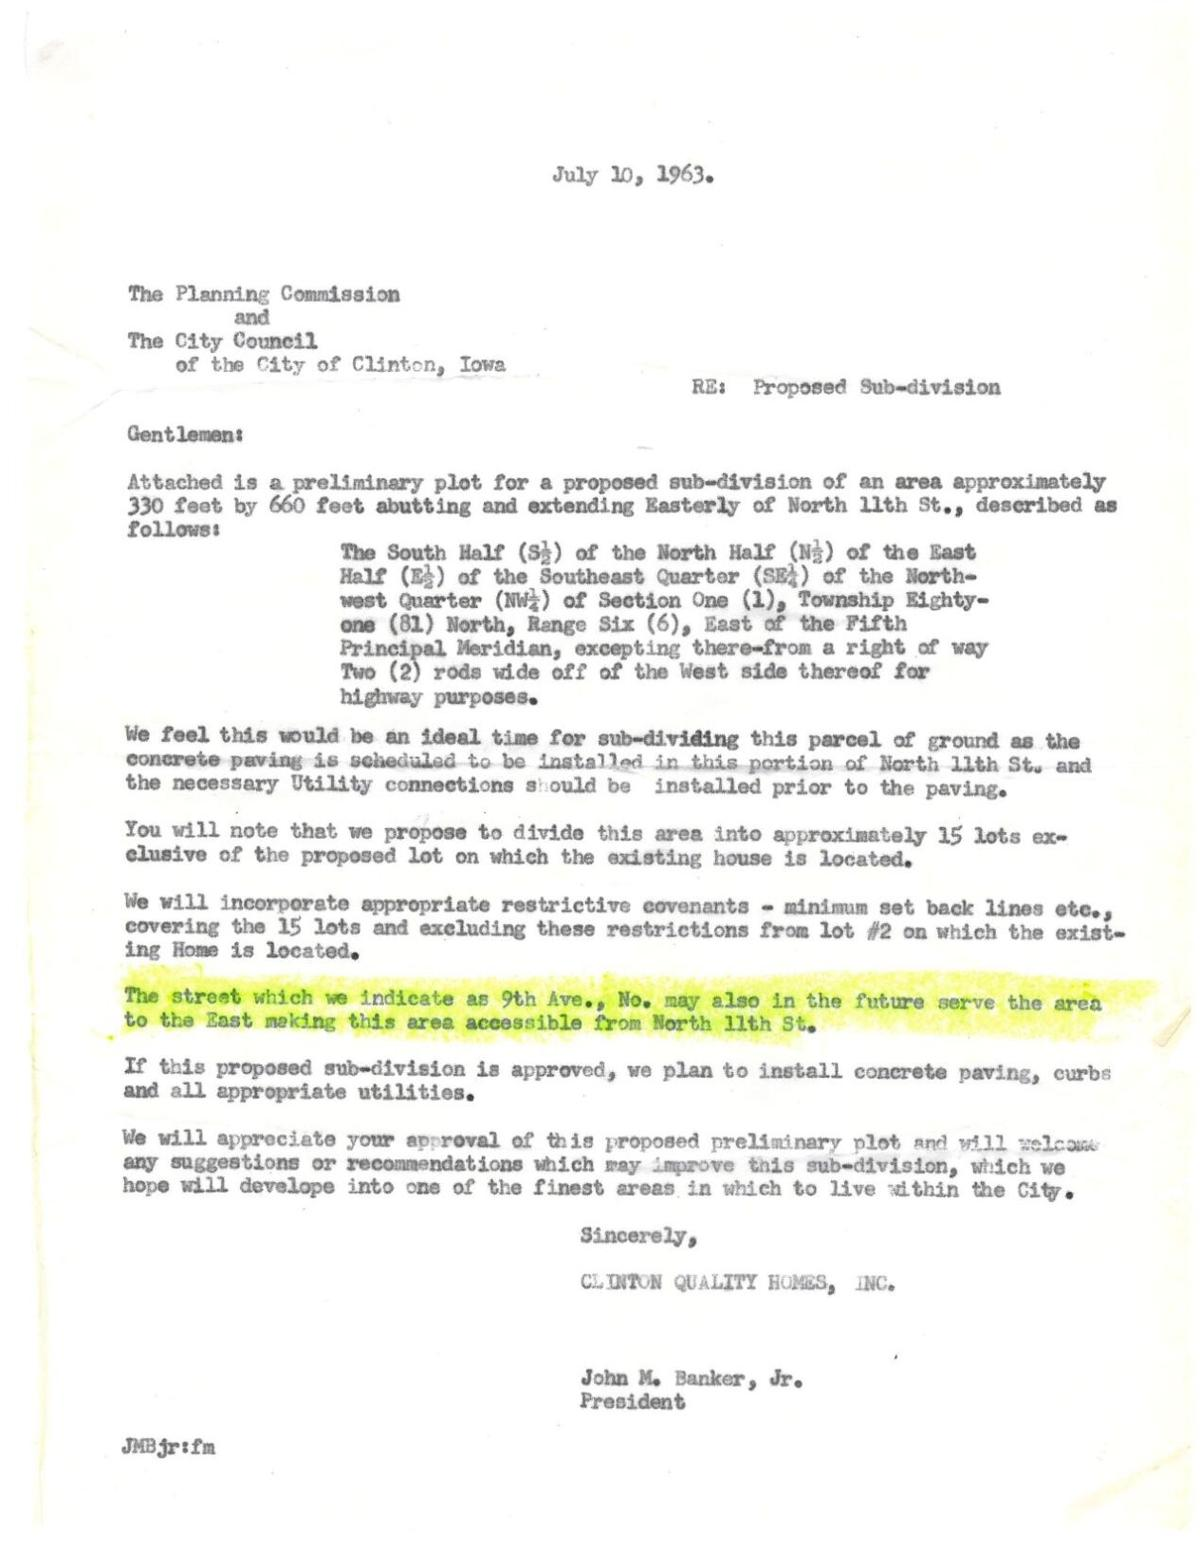 1963 letter referencing Ninth Avenue North